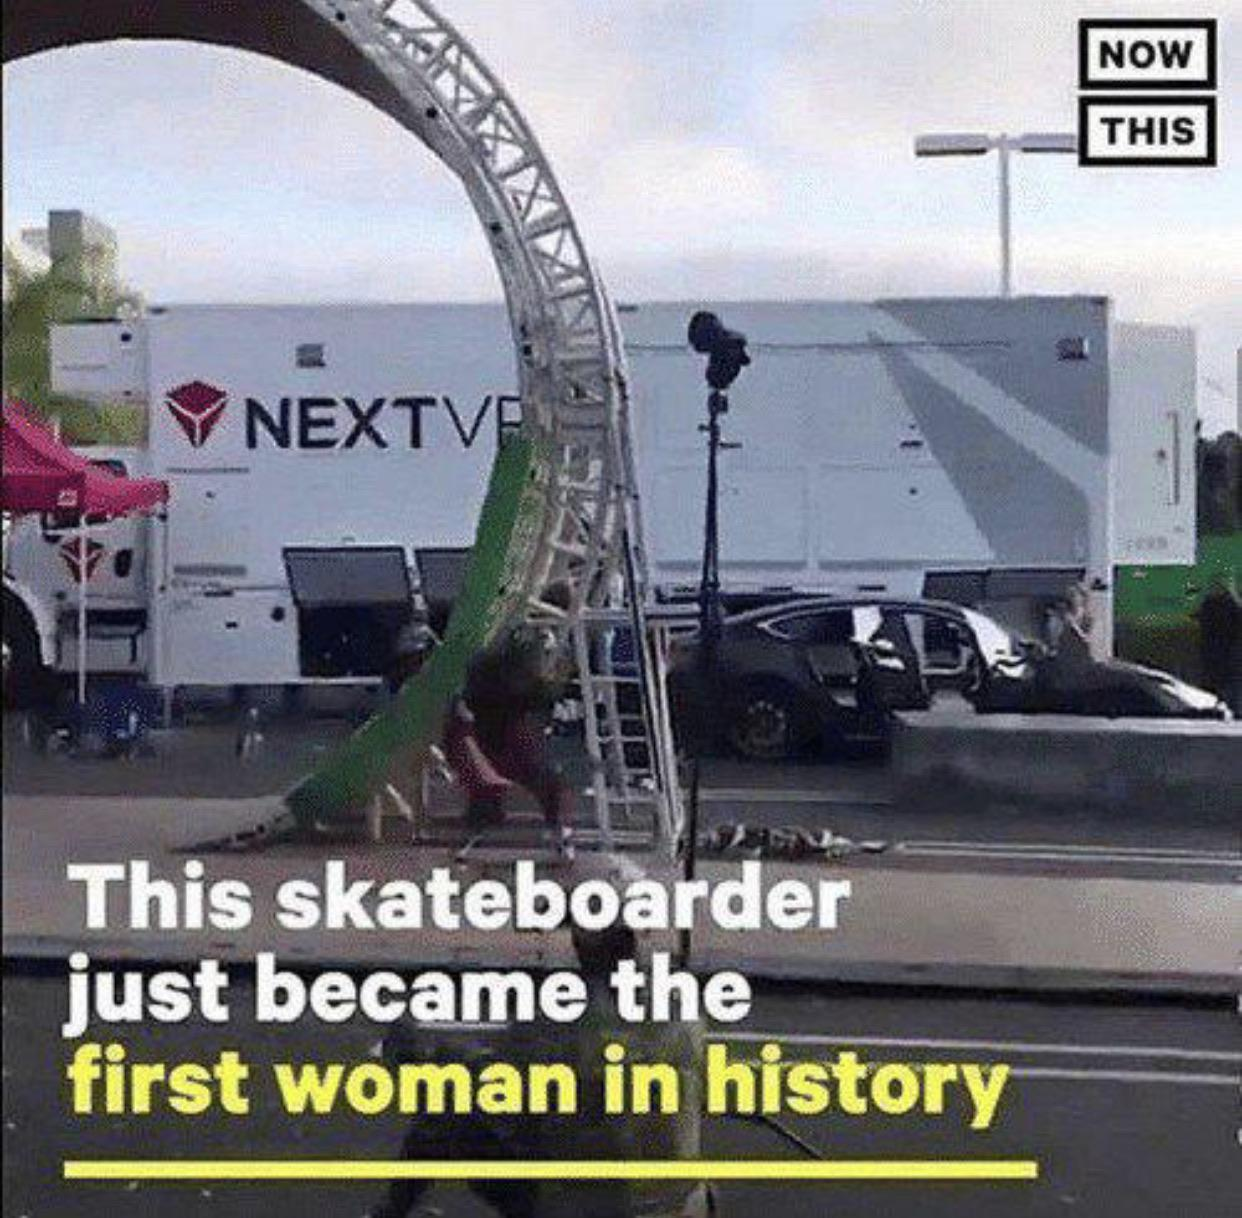 Cringe, Tony Hawk, VR, Next VR, Lizzie Armanto, Damn cringe memes Cringe, Tony Hawk, VR, Next VR, Lizzie Armanto, Damn text: NOW THIS 9 NEXTV This skateboarder just became the first woman in histor